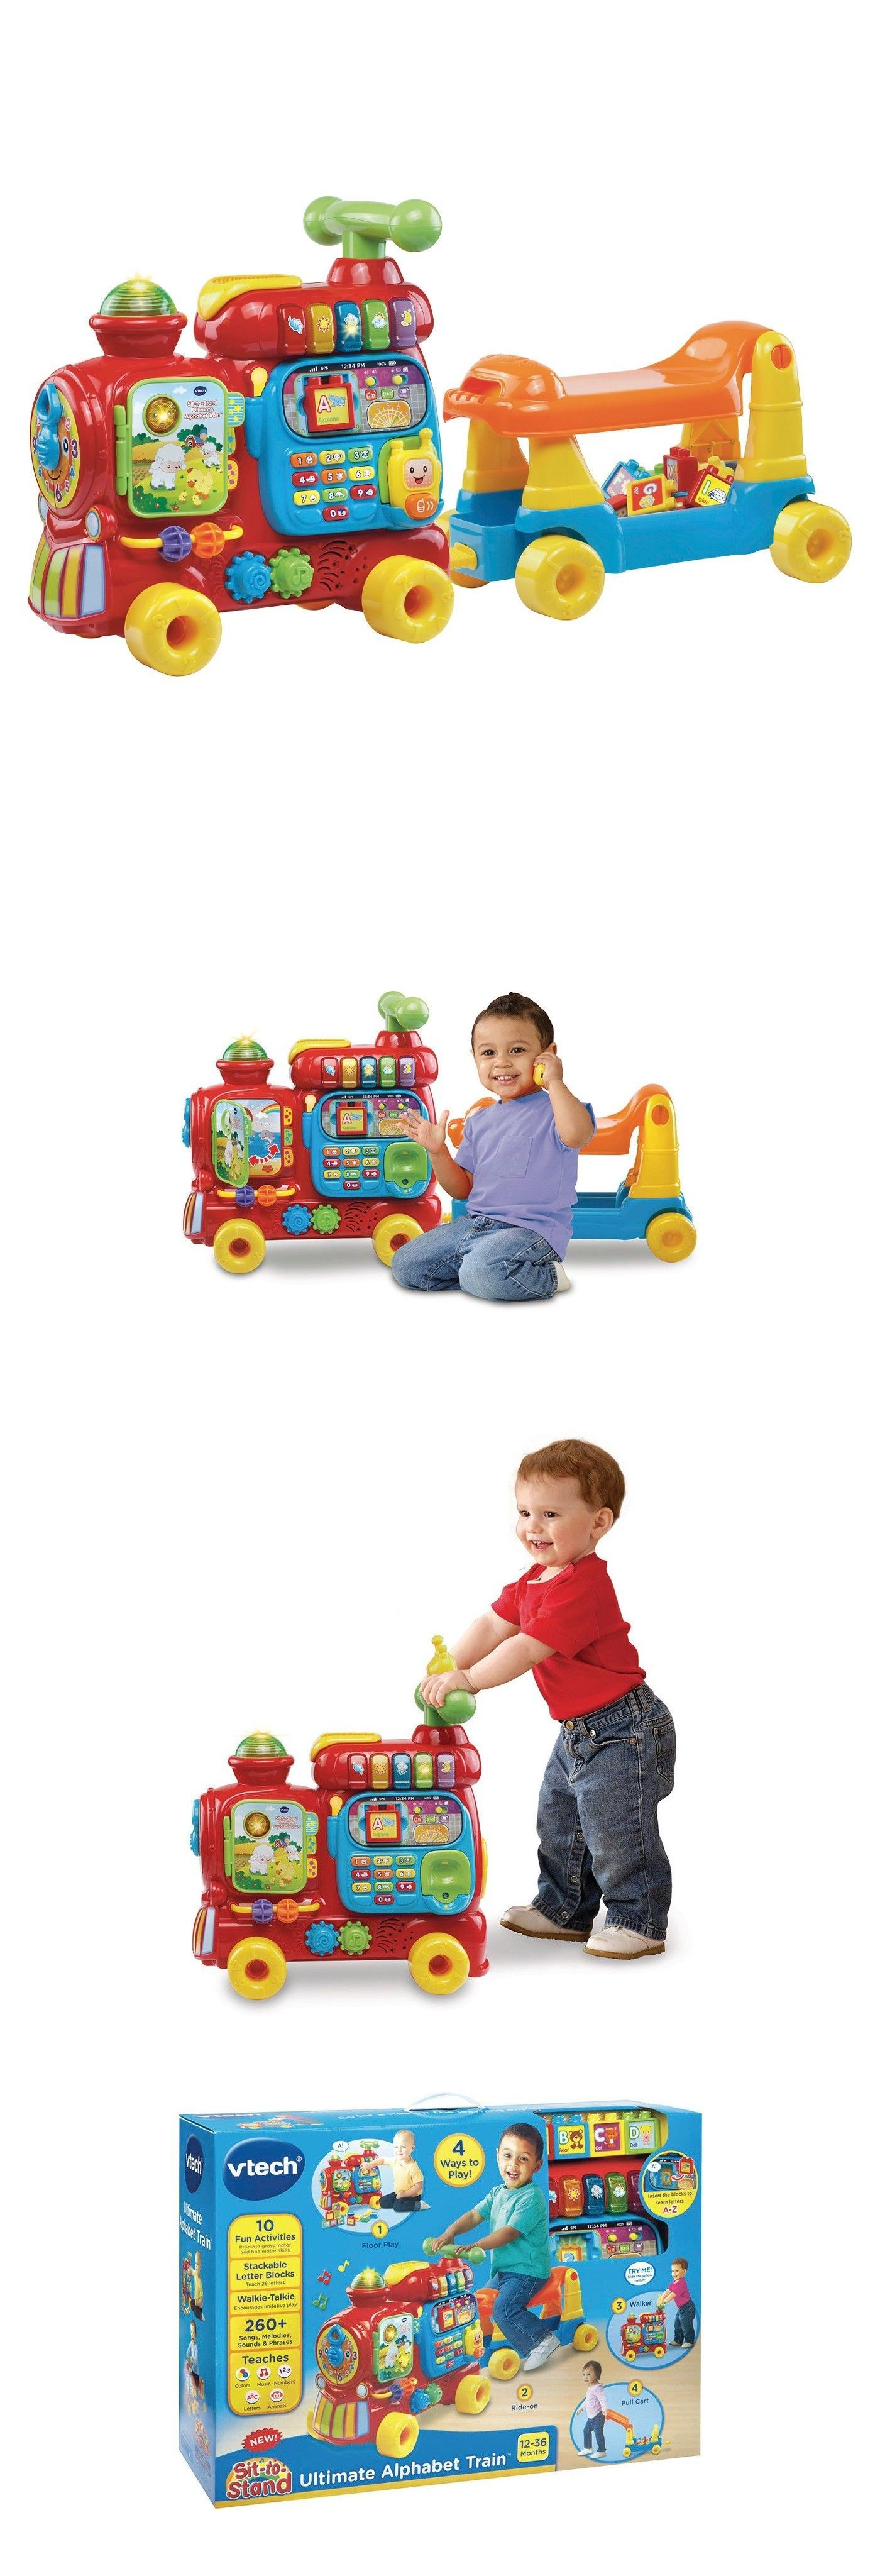 Vtech Ultimate Alphabet Train Toddler Baby Educational Learning Toy